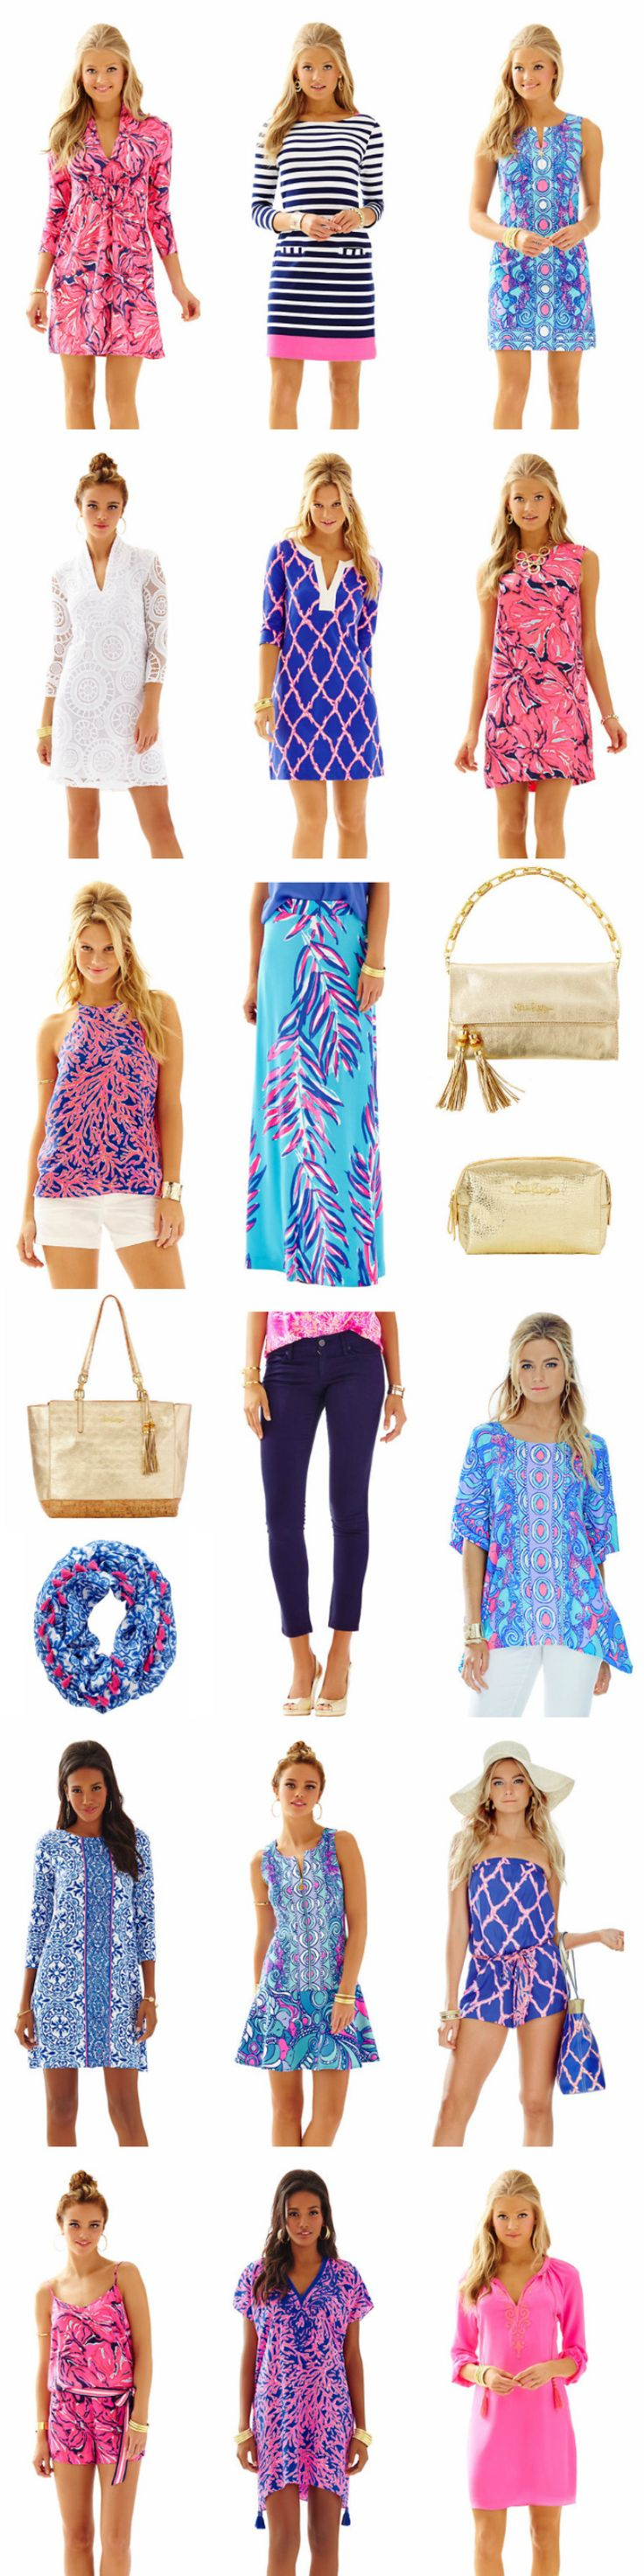 Lilly Pulitzer, go ahead and take all of my money! The new releases are GORGEOUS. #buymelilly